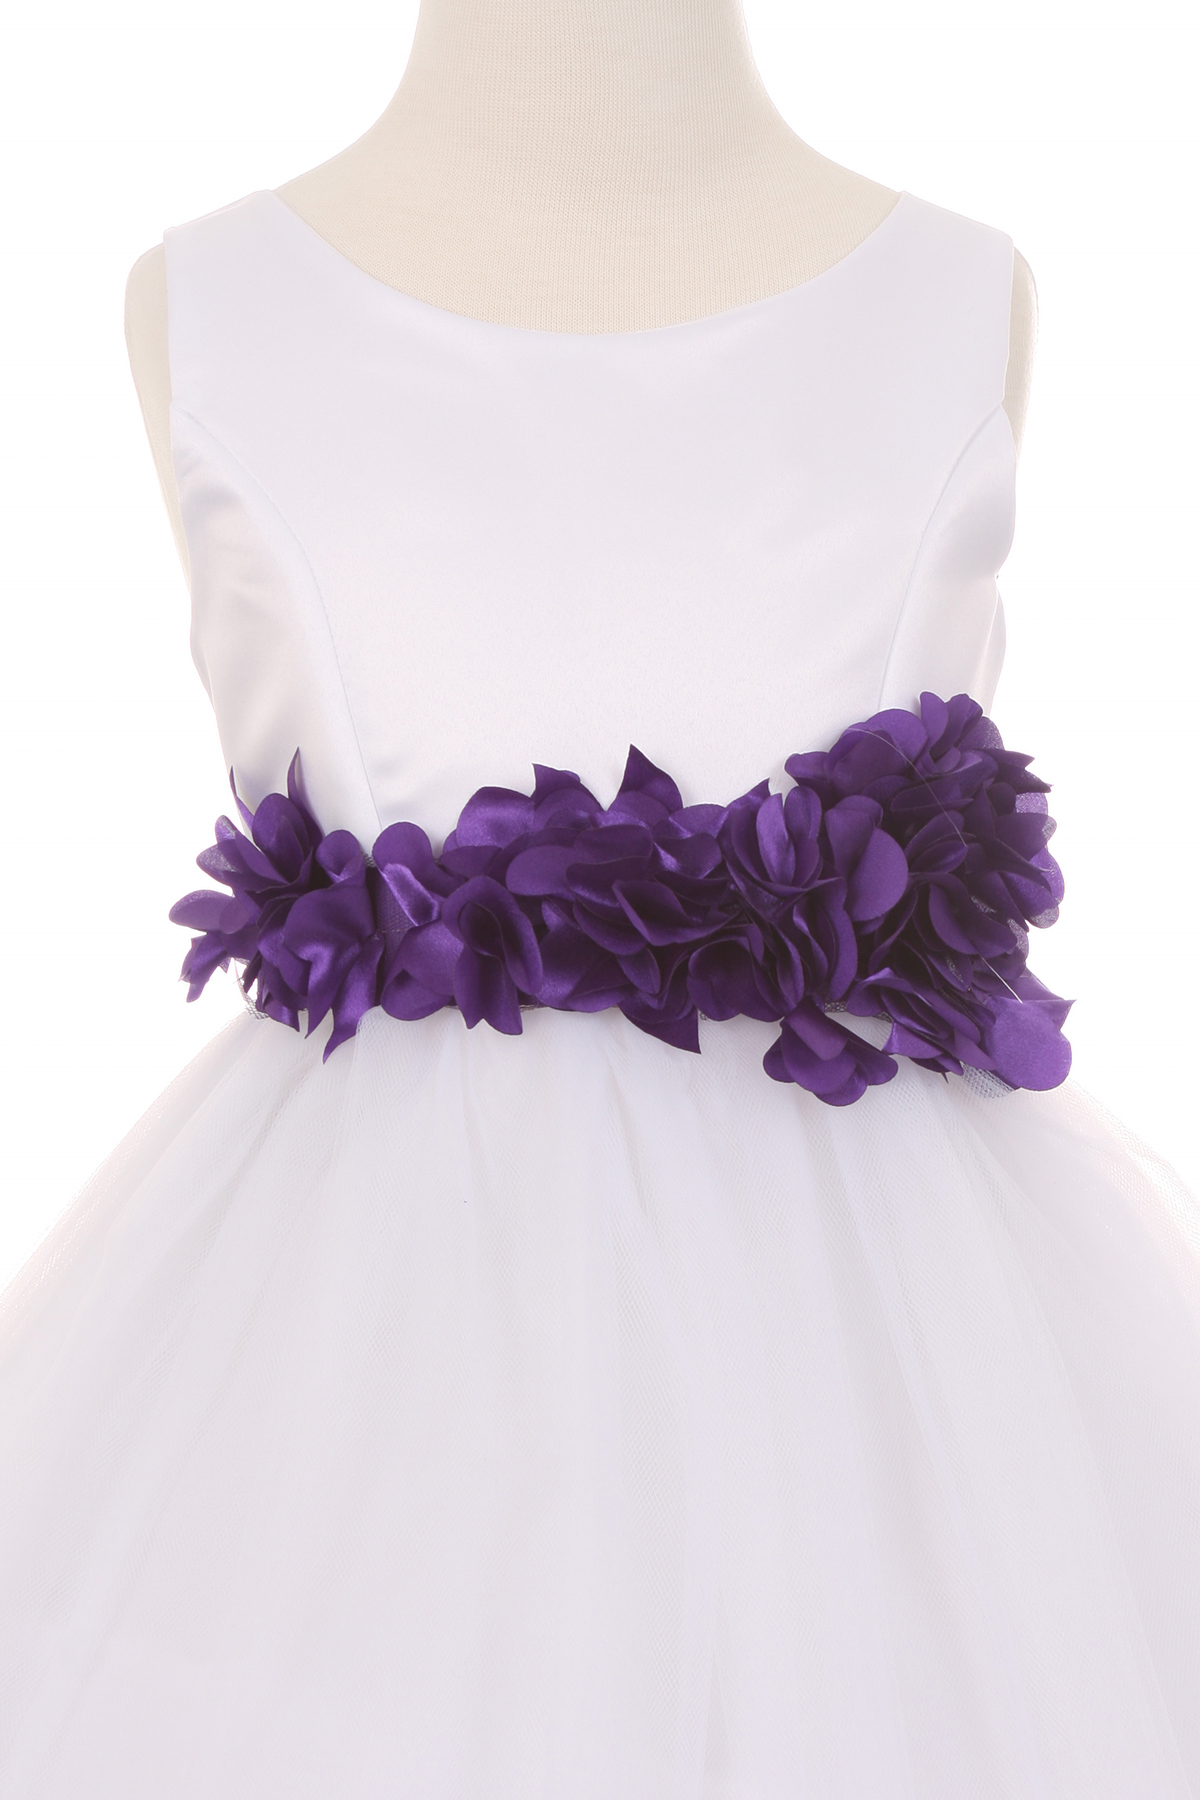 white dress with flower sash